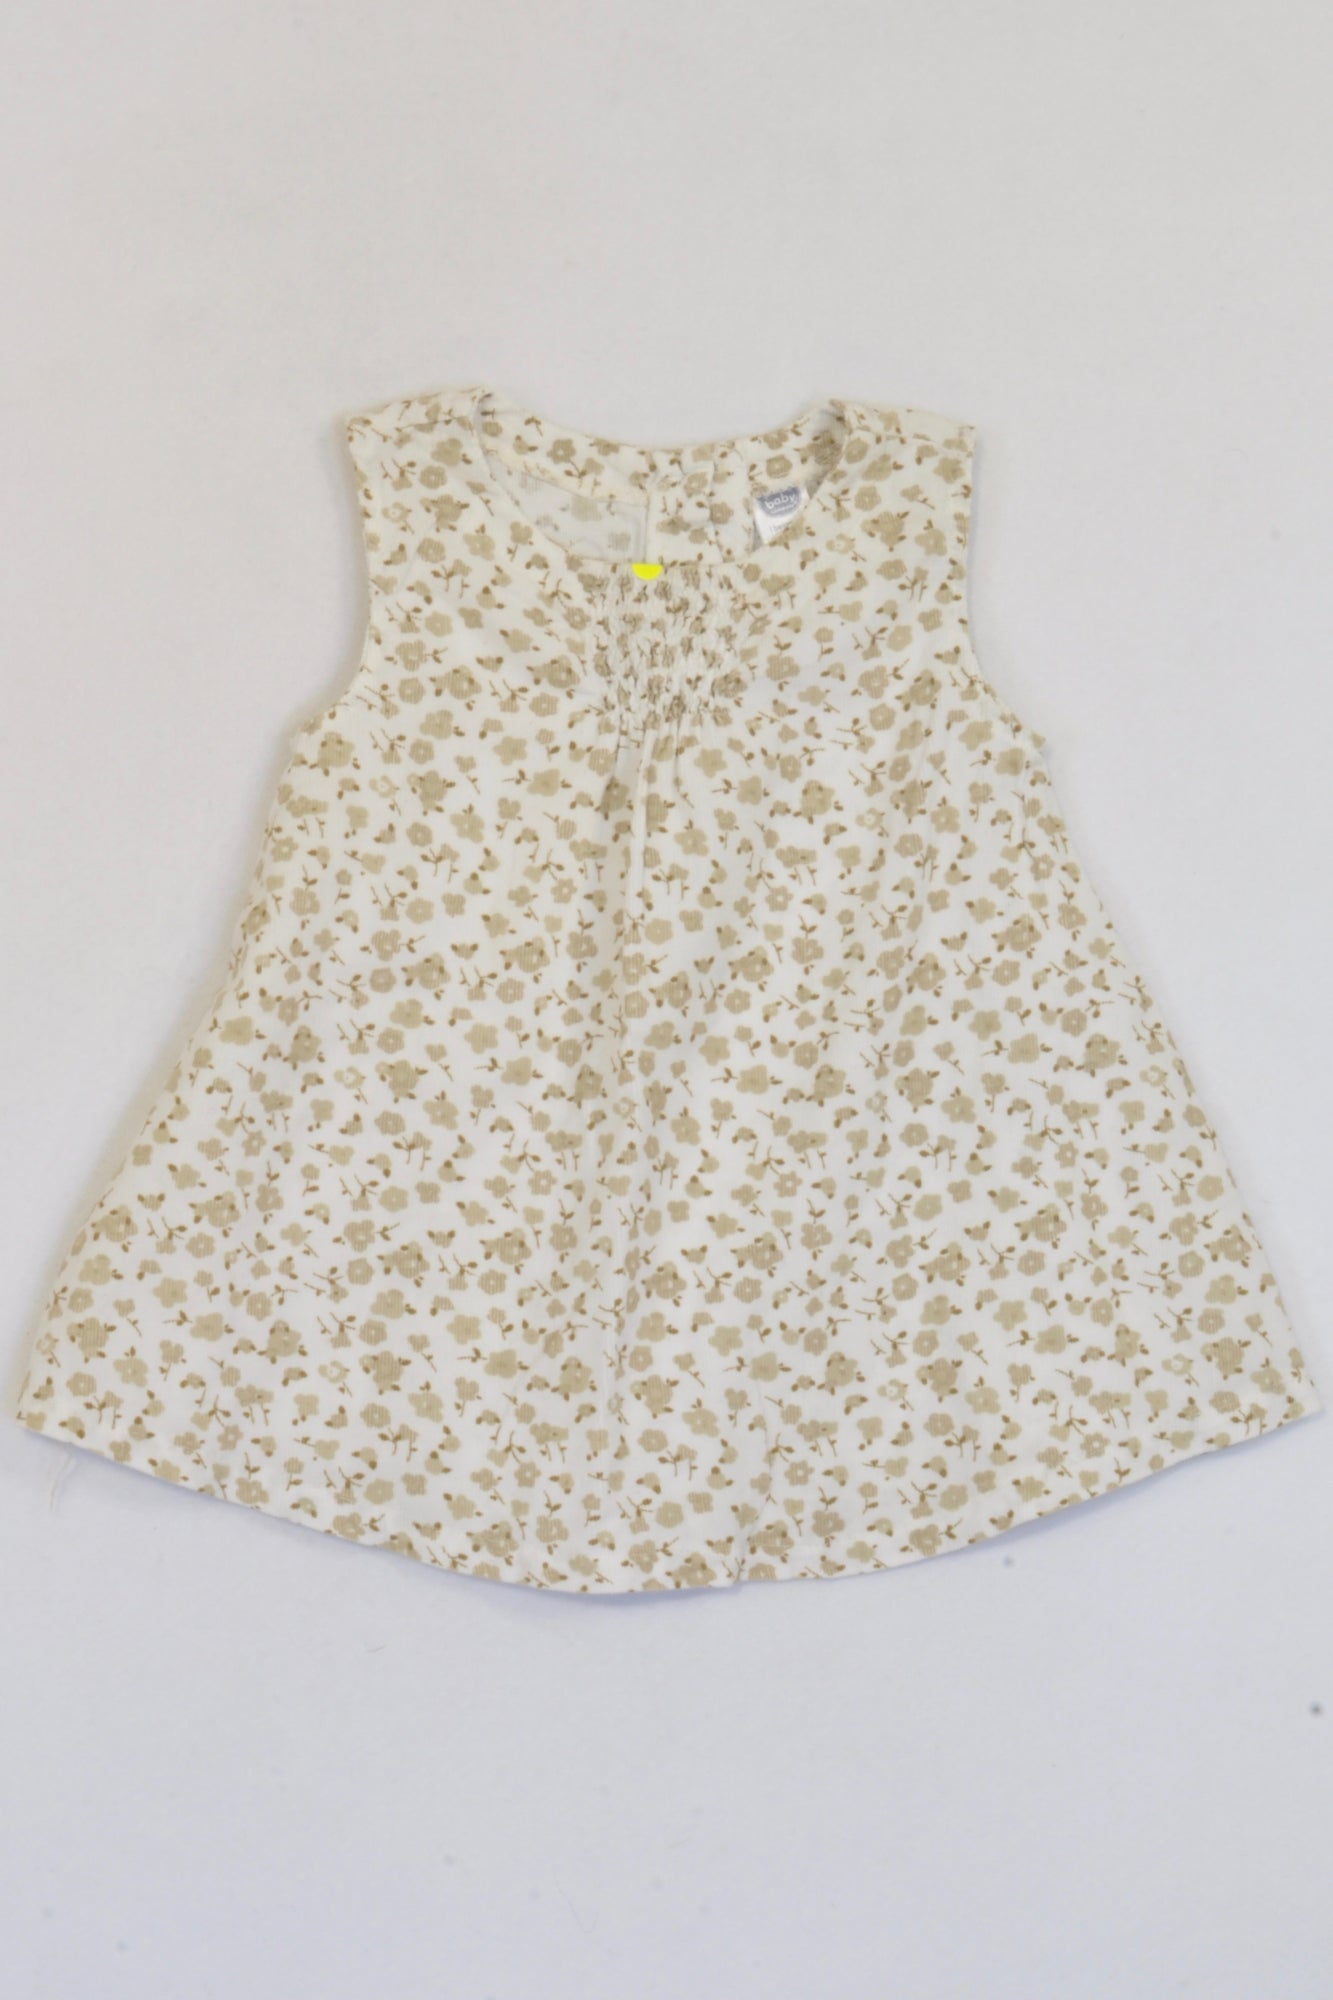 Ackermans Brown & White Floral Corduroy Dress Girls 6-12 months